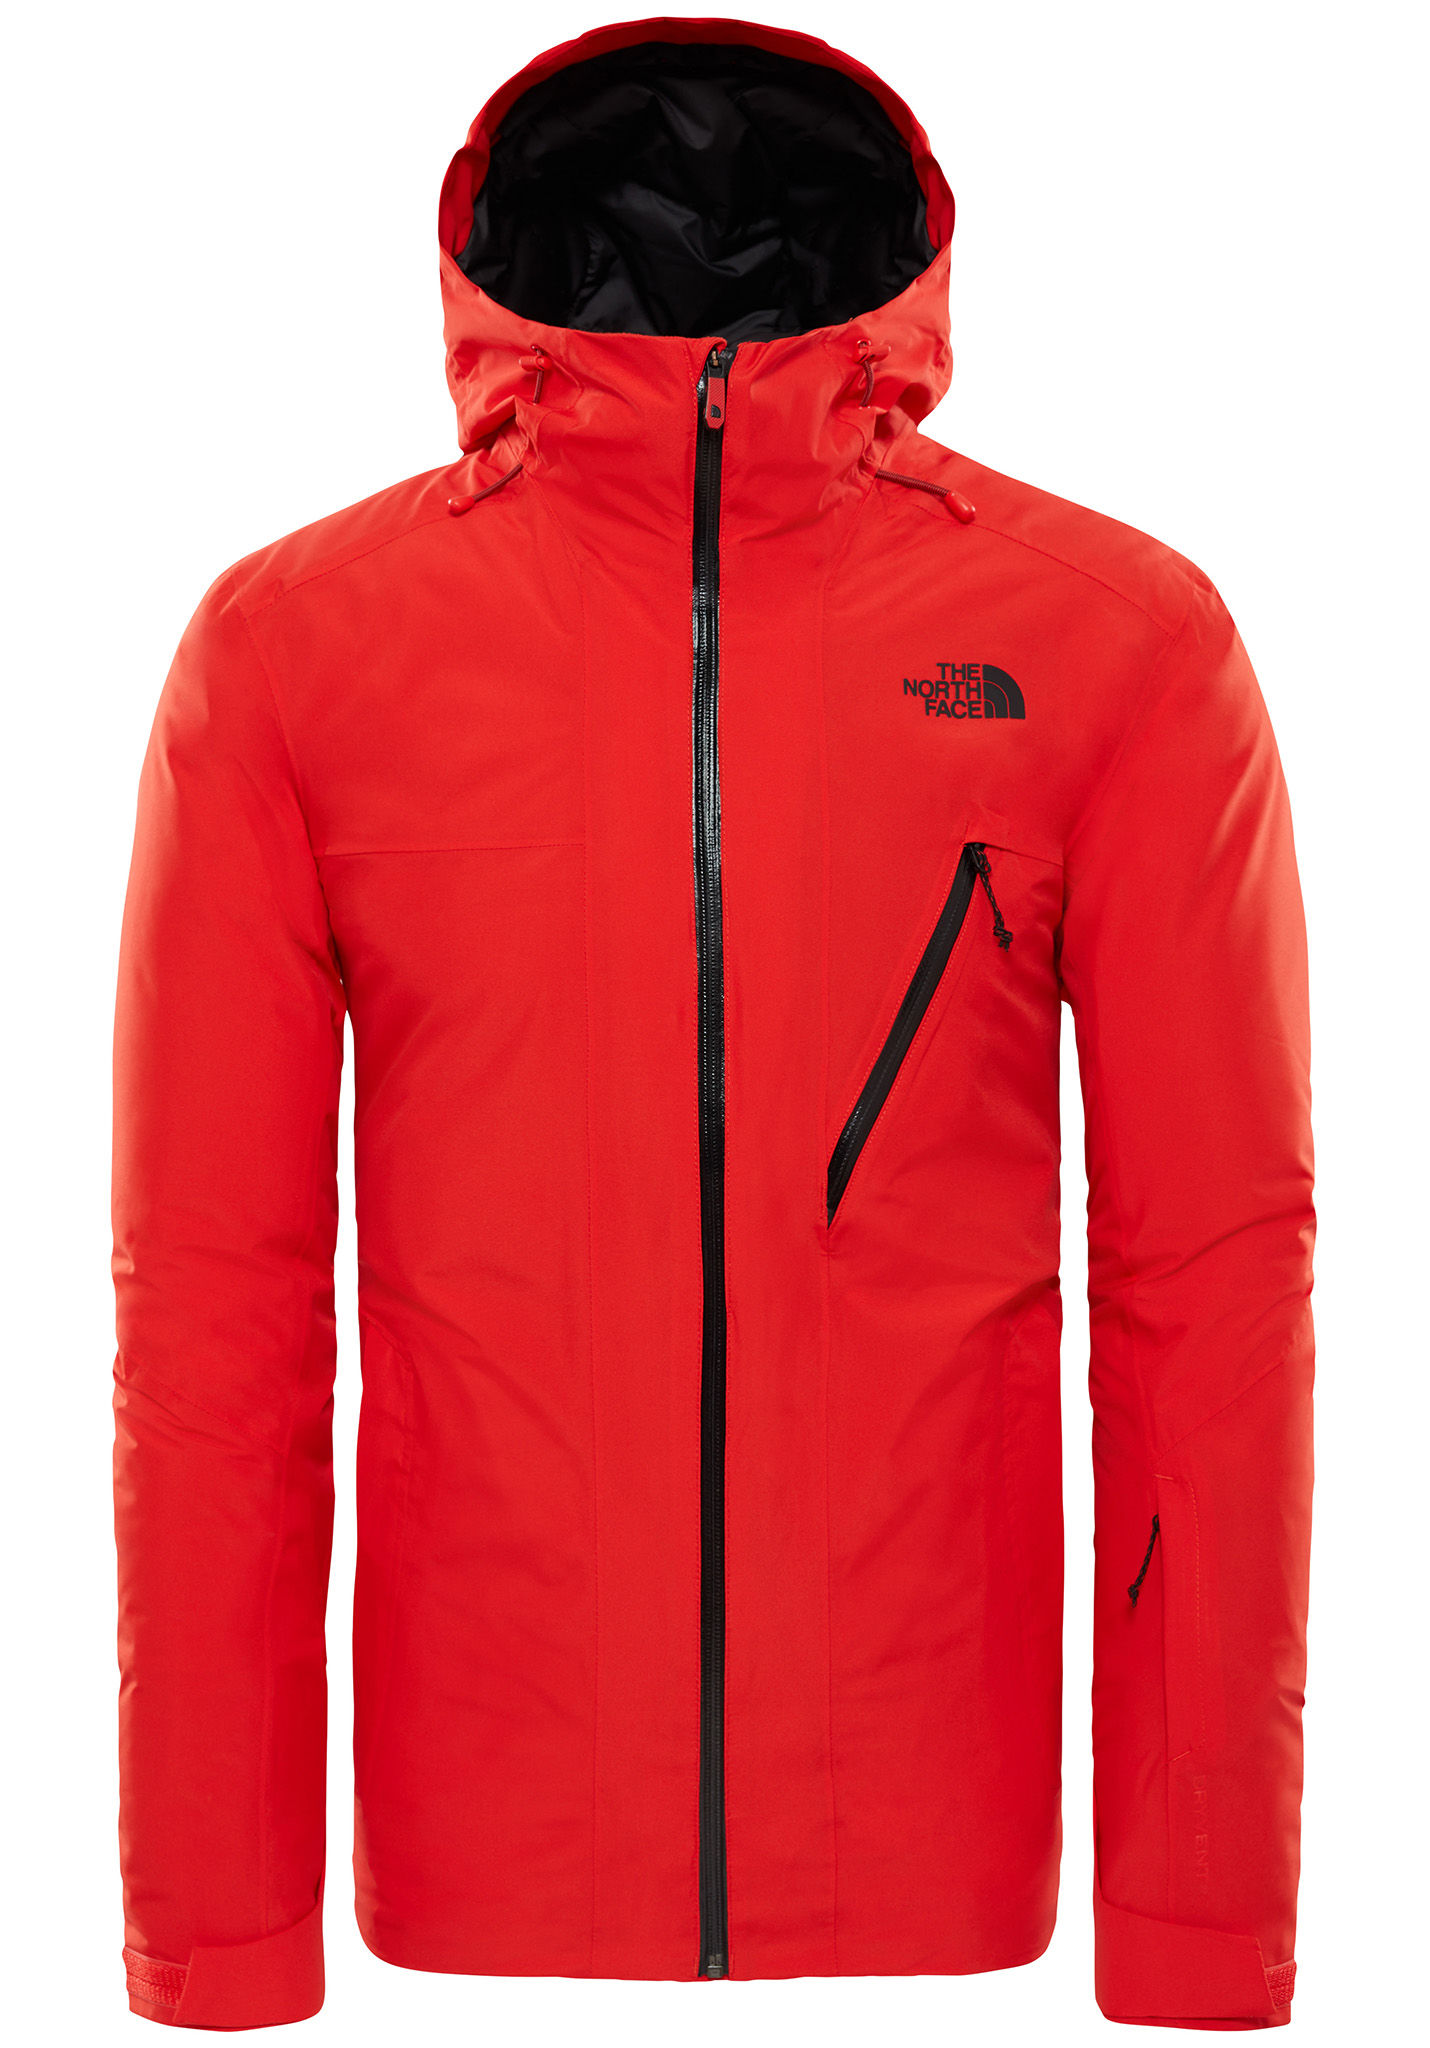 THE NORTH FACE Descendit - Giacca outdoor per Uomo - Rosso - Planet Sports 08ec73220c25